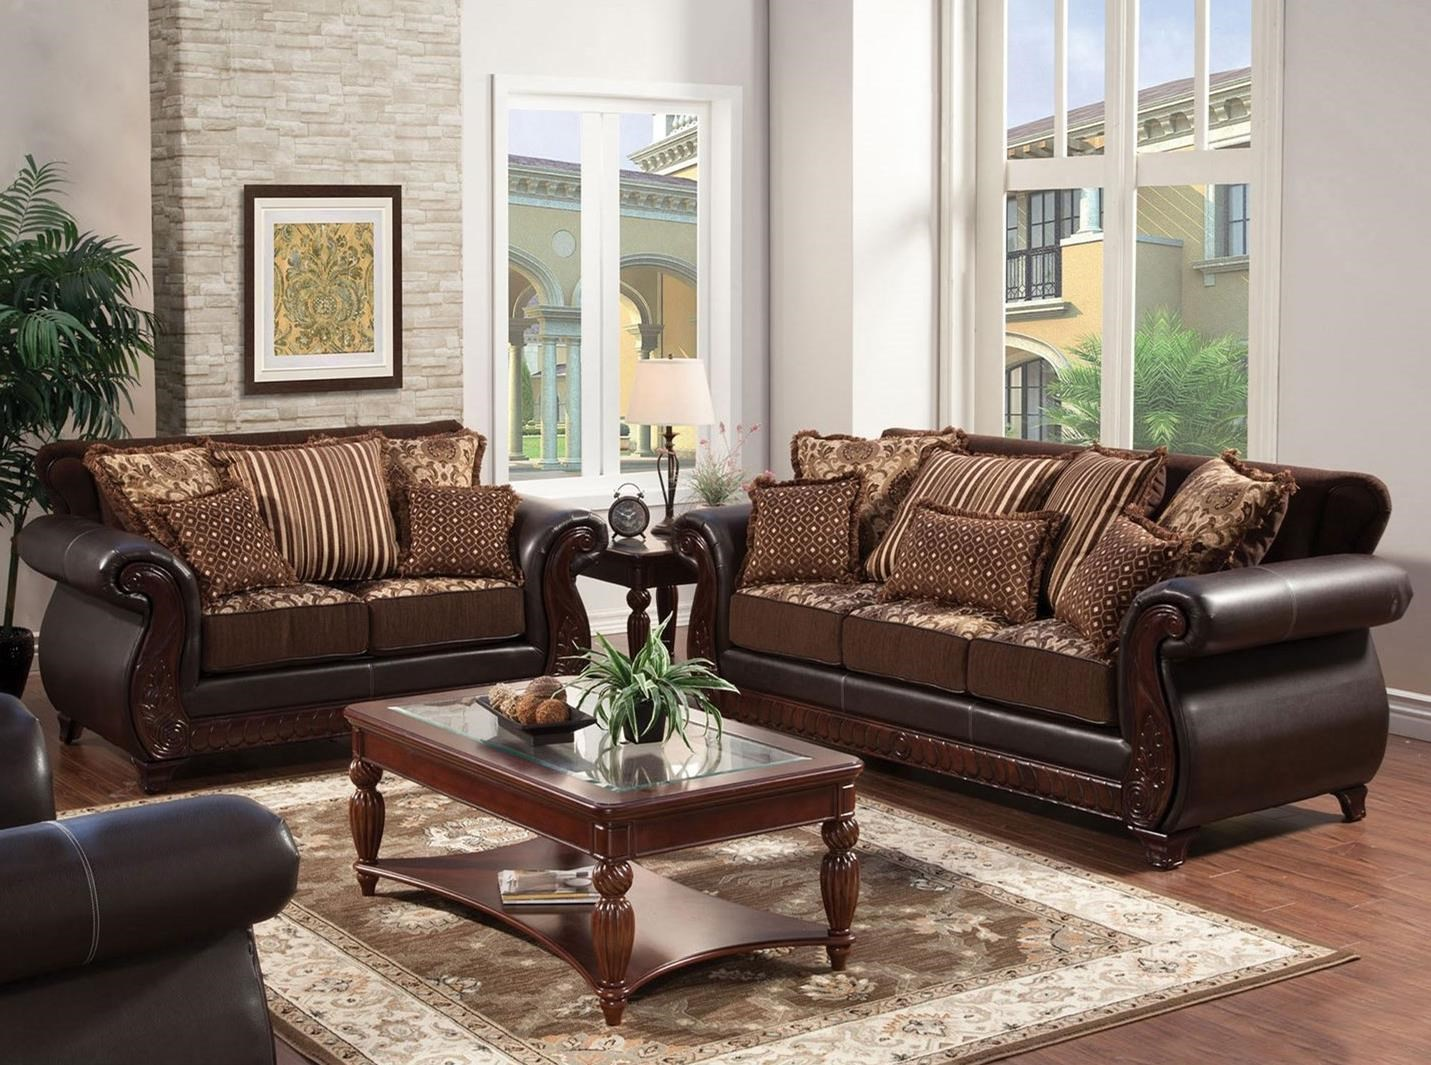 Franklin Sofa and Love Seat by Furniture of America at Dream Home Interiors